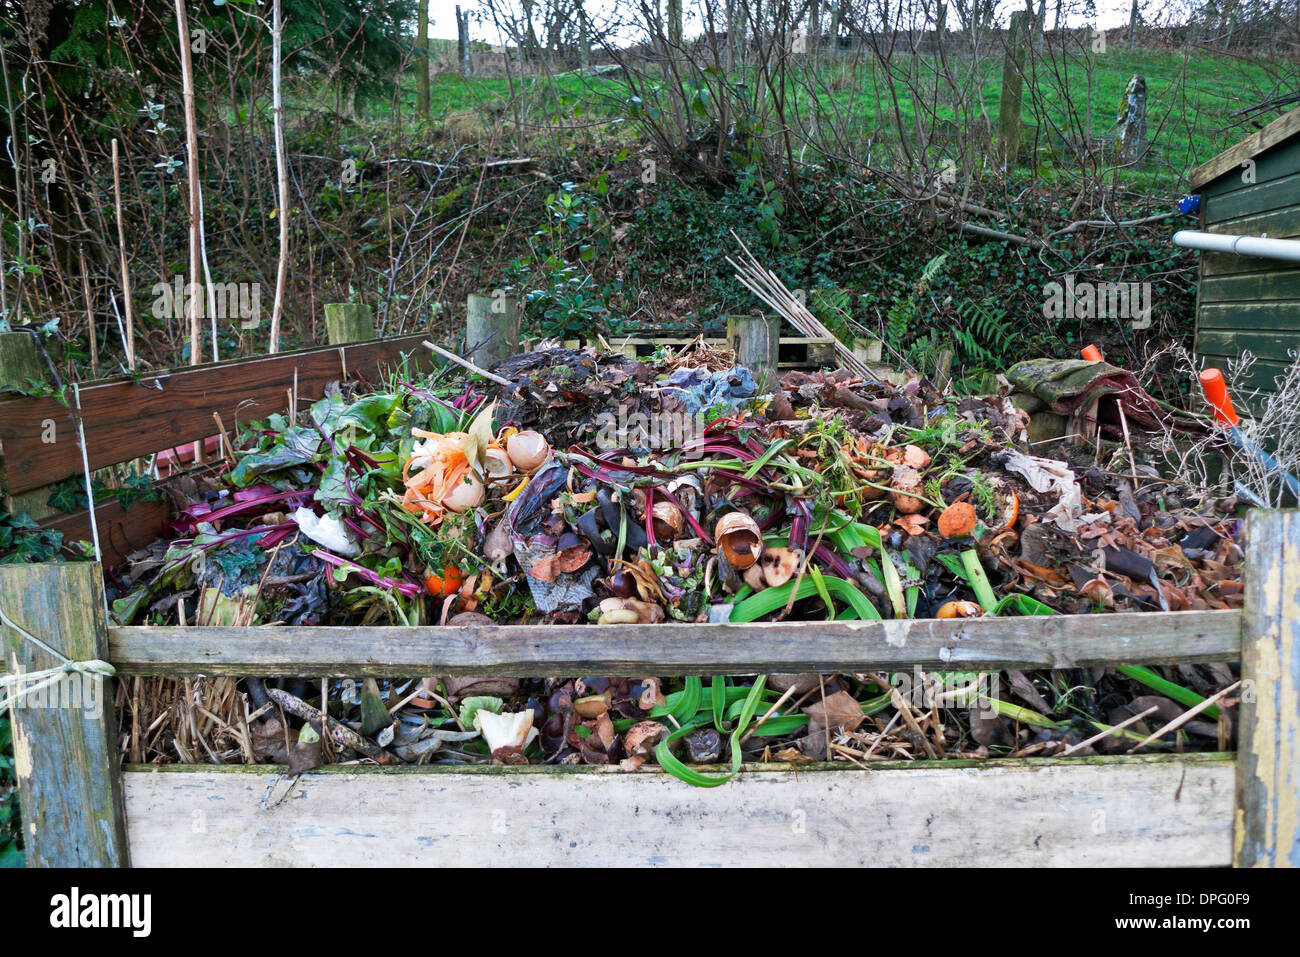 Vegetable waste rotting in garden compost in wooden composting bin in winter in Carmarthenshire Wales UK   KATHY DEWITT - Stock Image